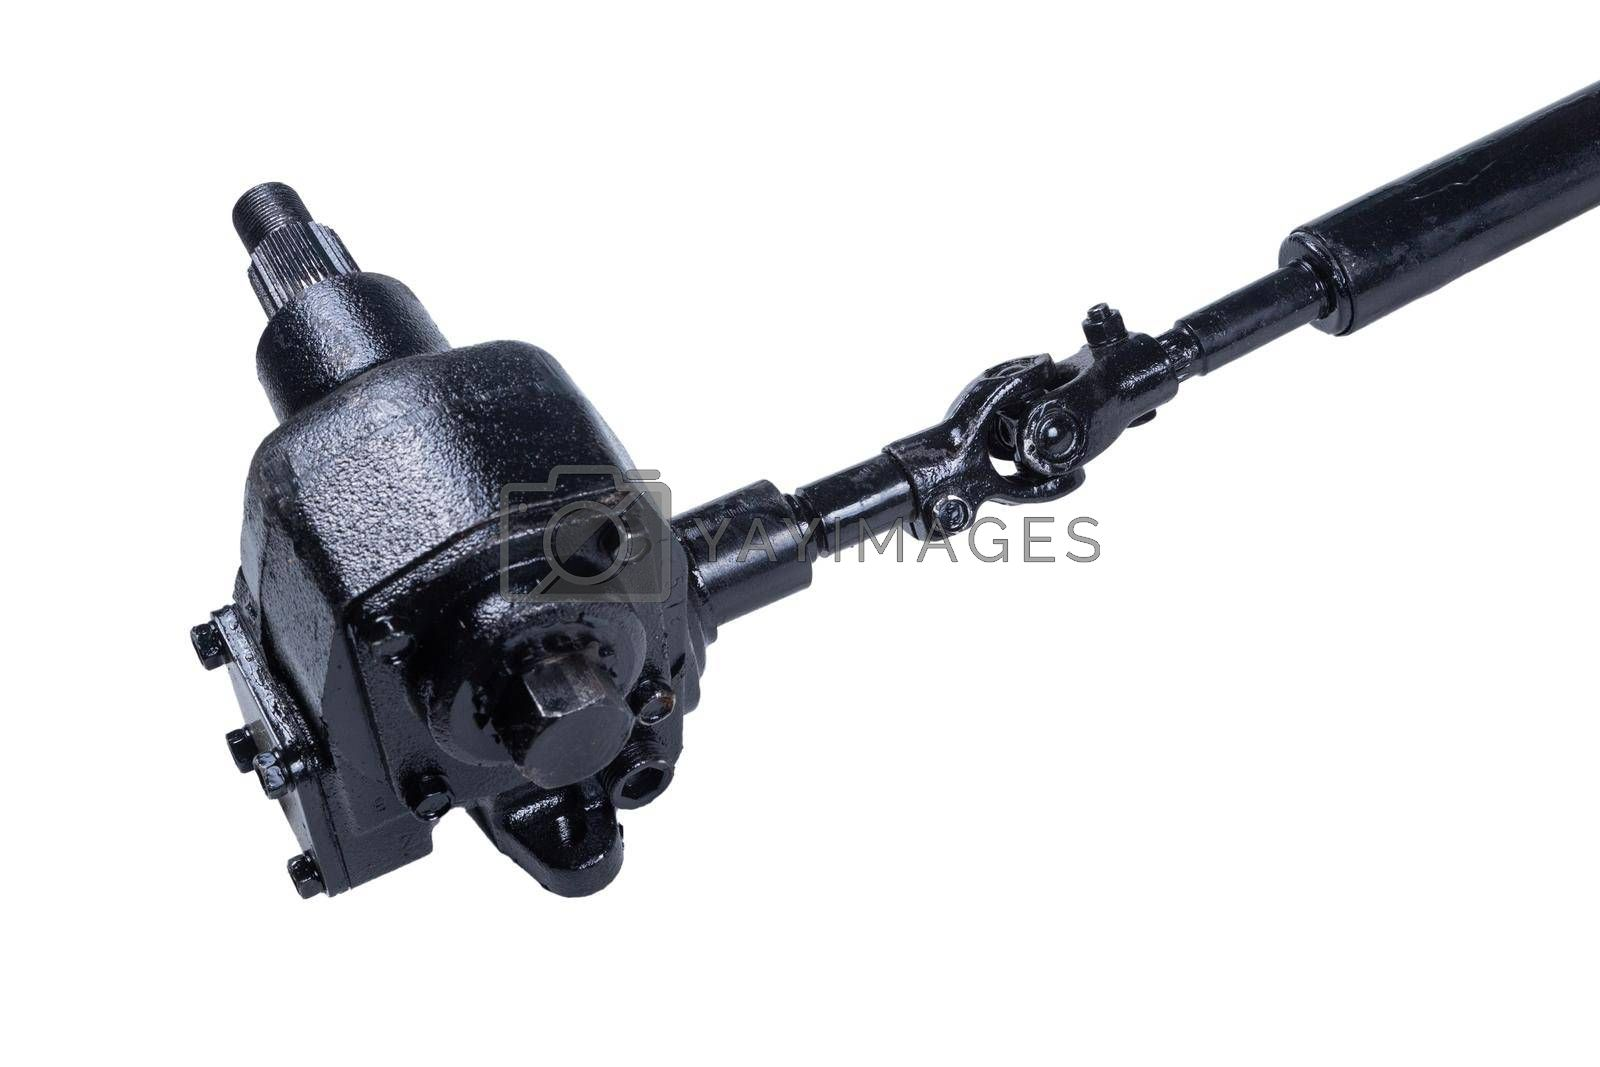 Steering mechanism gear of the truck on an isolated white background.